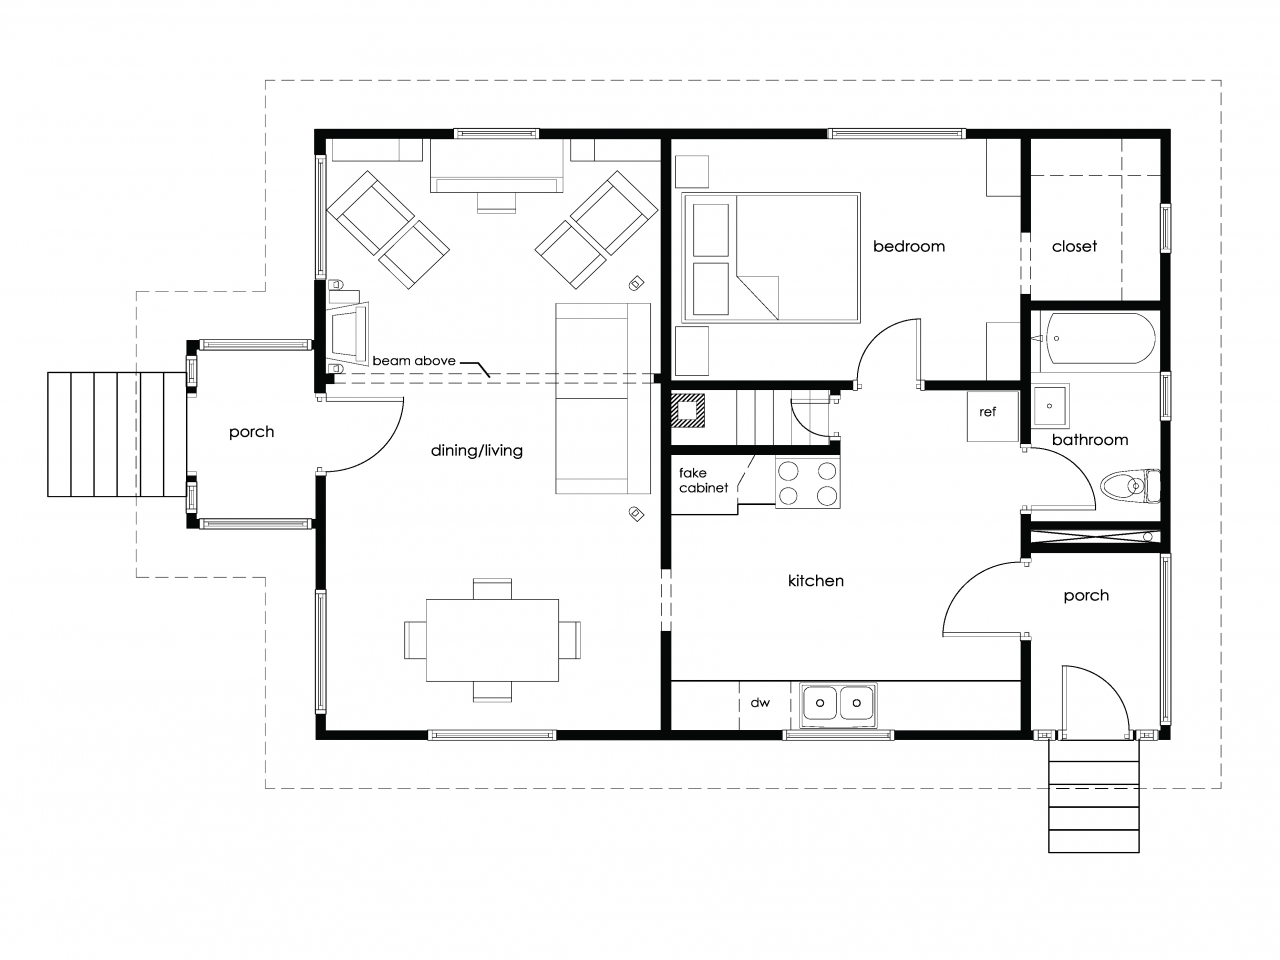 3 bedroom house plans free printable html with D254b8dd1df7912a 20 X 20 Grid Printable 20 X 20 Floor Plans on 5 House Cleaning List Templates as well 3ff9925aacf0d2b6 Free Printable Furniture Templates For Floor Plans Furniture Placement Templates Free Printable also Kroger Floor Plan additionally 4ace1d3cfa17746a Free Printable House Blueprints Free House Plans South Africa also House Plan page MONTGOMERY 2341 B.